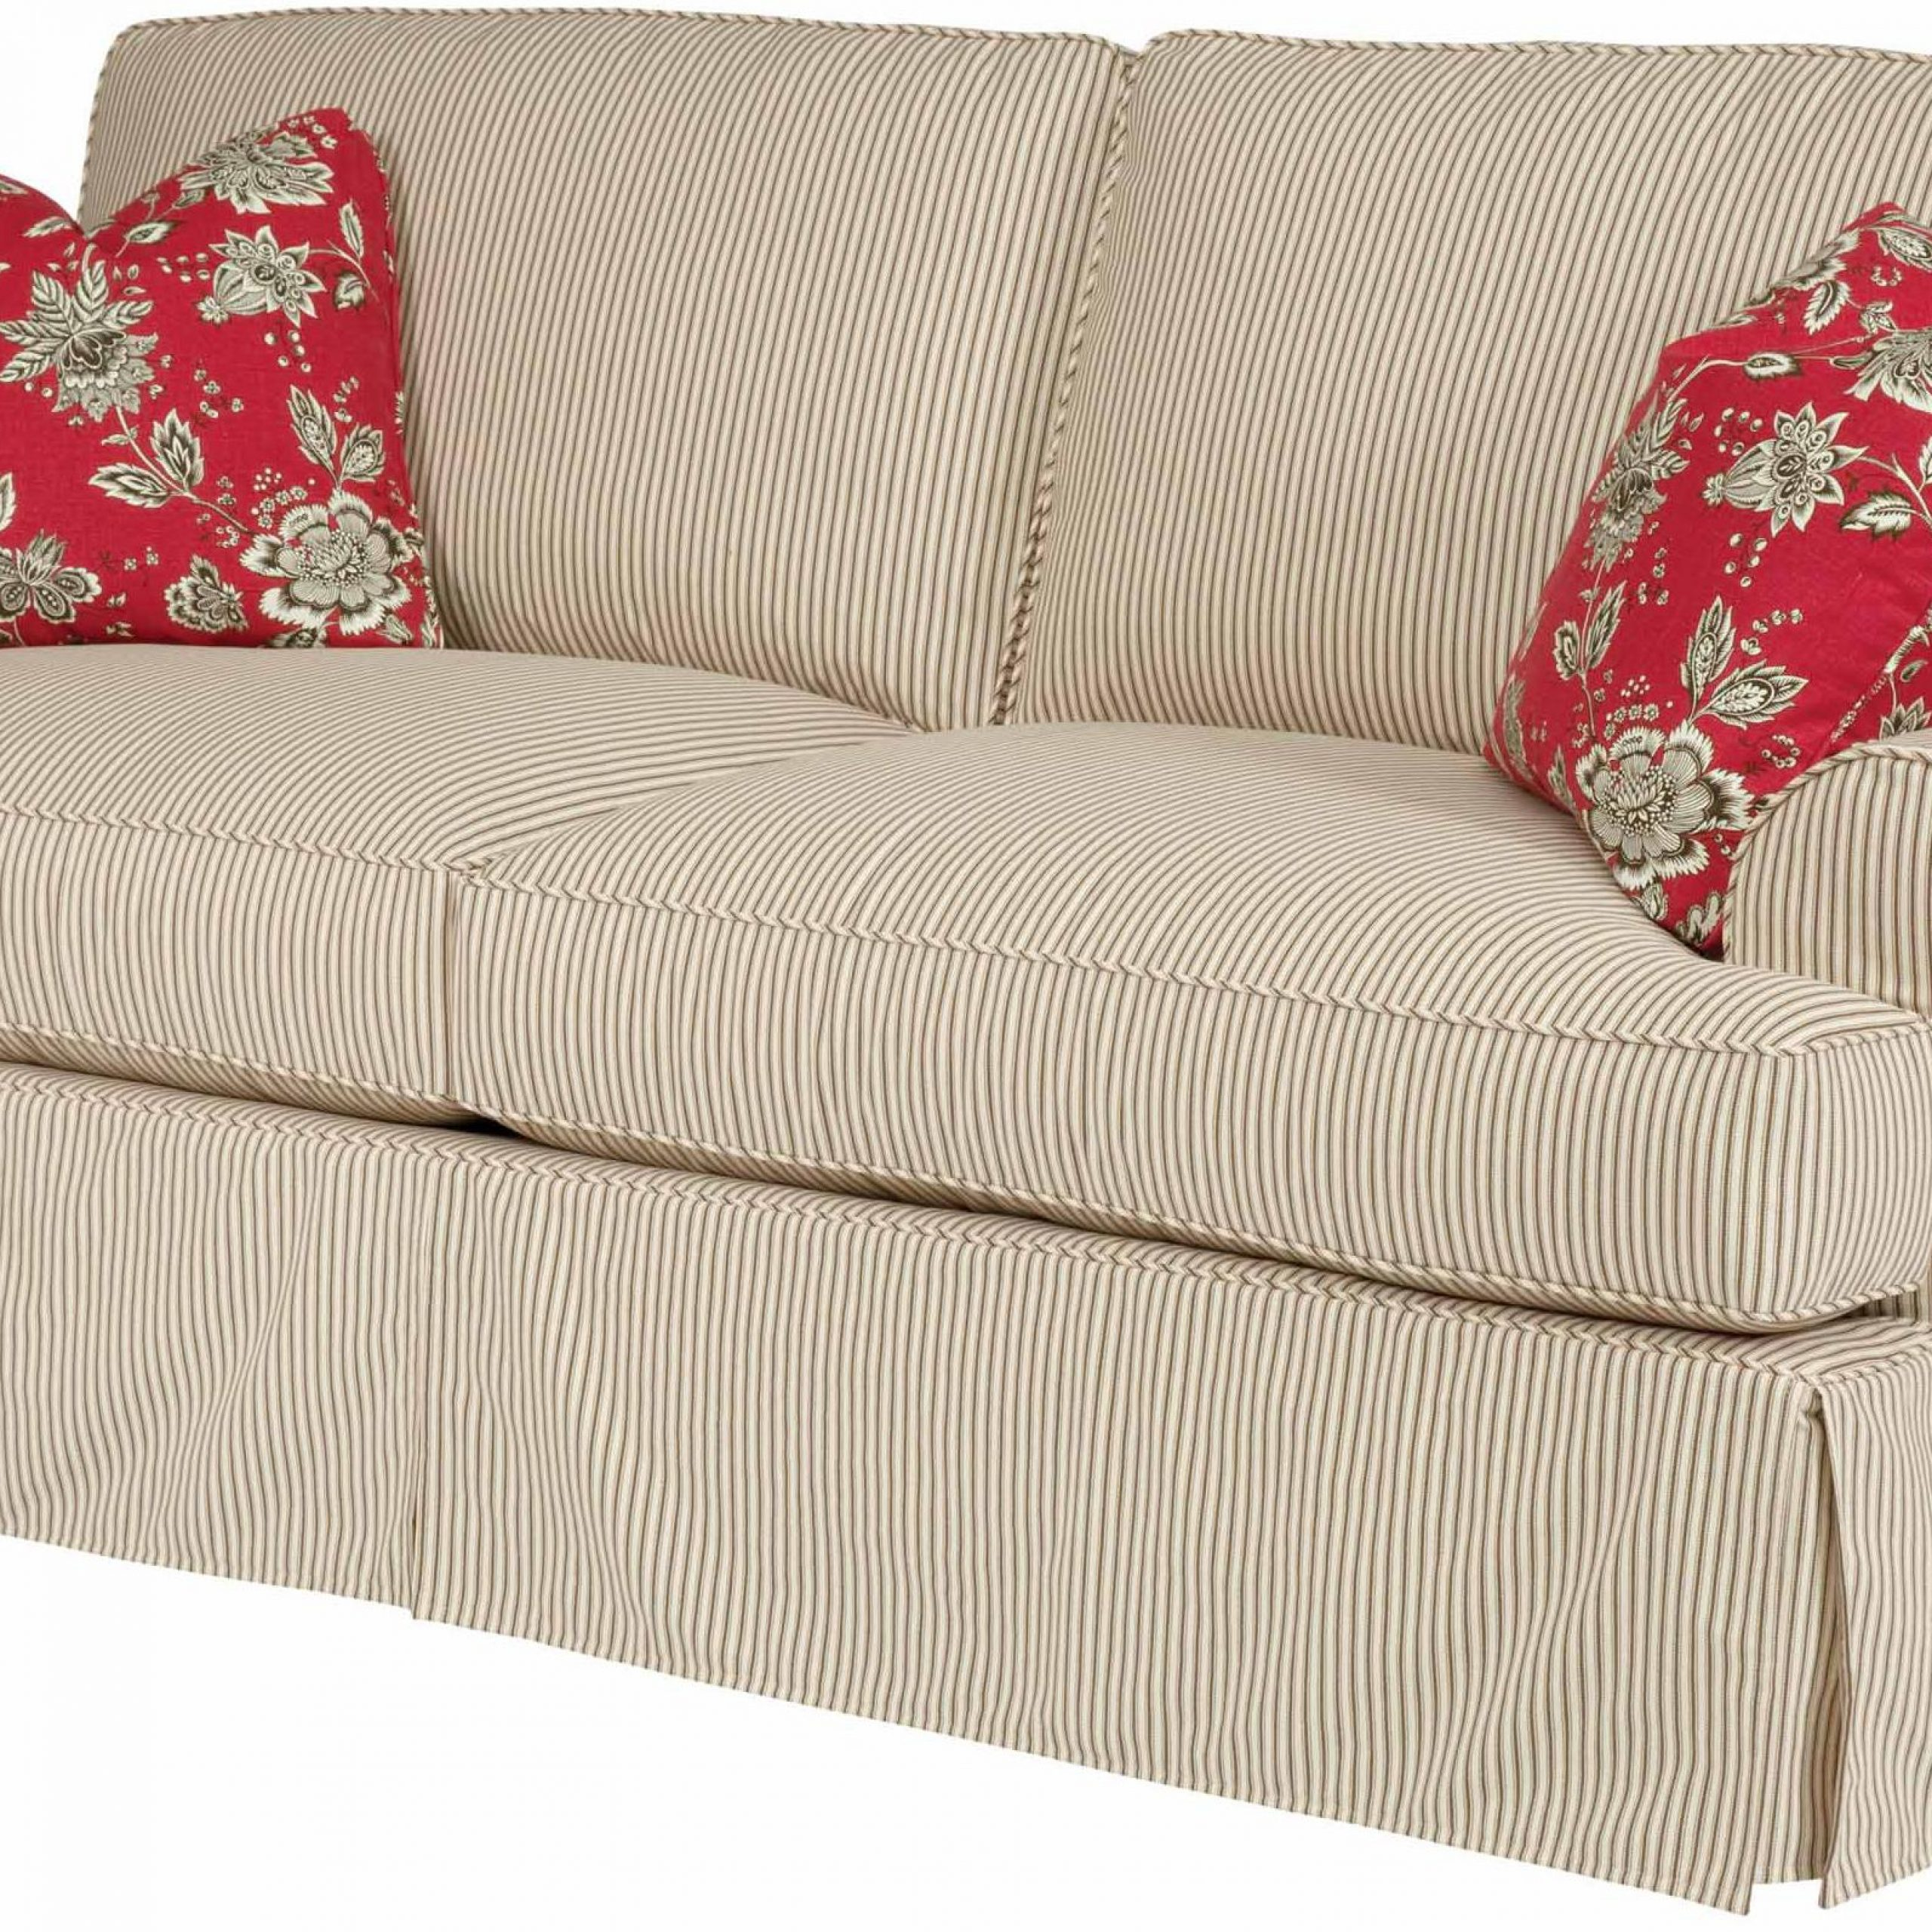 2019 Kincaid Furniture Samantha Samantha Two Seat Sofa With Pertaining To Lyvia Pillowback Sofa Sectional Sofas (View 16 of 20)